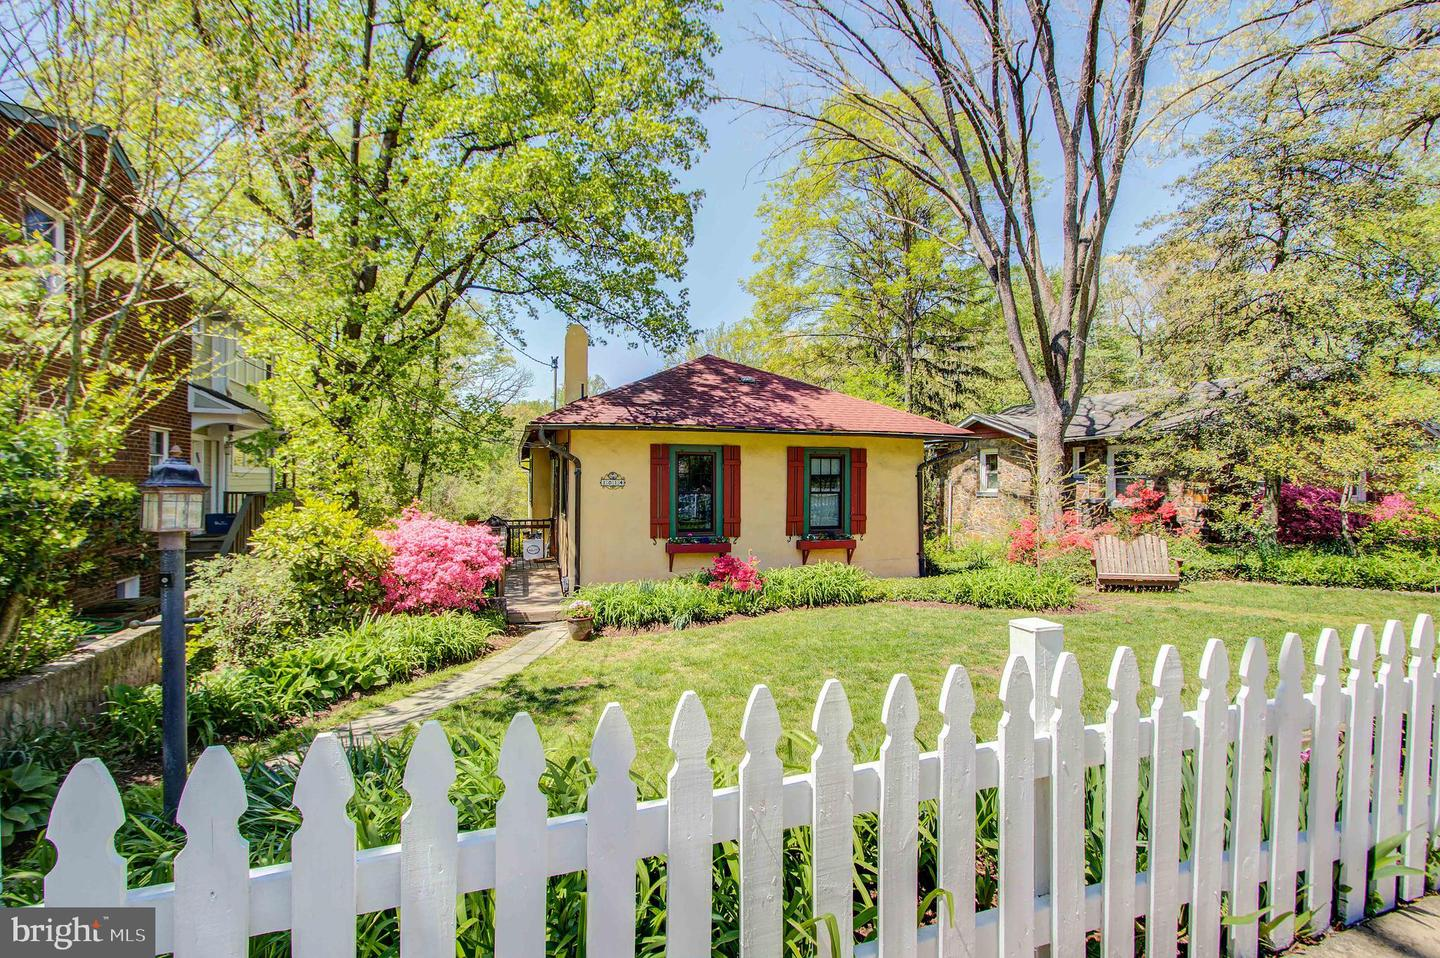 1014 ELM AVE, TAKOMA PARK, Maryland 20912, 3 Bedrooms Bedrooms, ,2 BathroomsBathrooms,Single Family,For Sale,1014 ELM AVE,MDMC747478